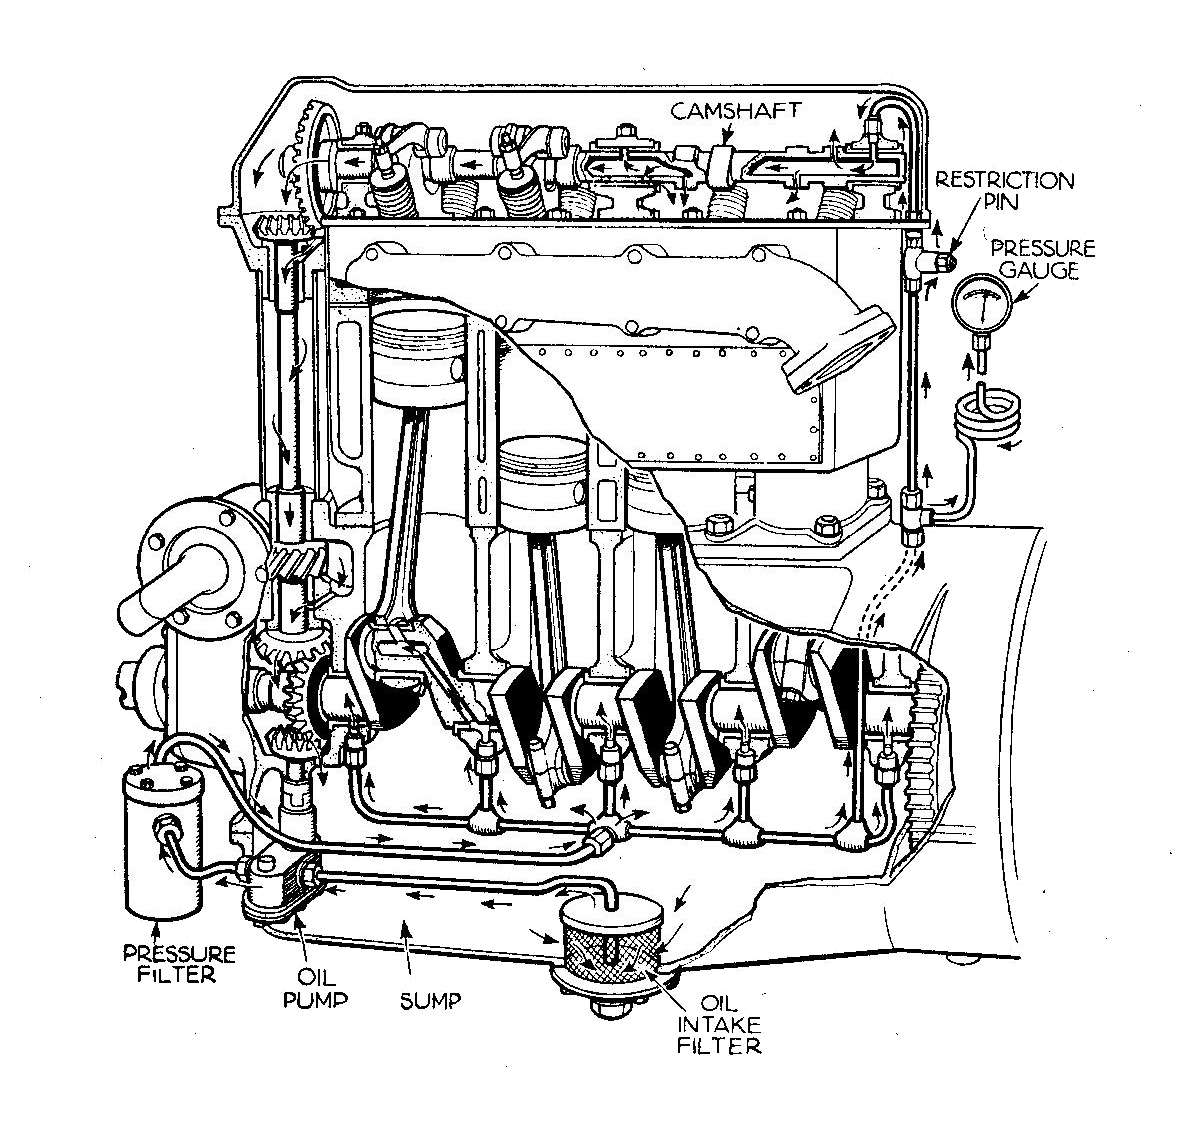 1935 ford truck wiring diagram with Oil Pump  Internal  Bustion Engine on 1948 52 Ford Truck Short Bed moreover 34815 So Here Is My Brake Storyscratching My Head also News as well 1956 Ford Car Vin Location also Ford F700 Pickup.